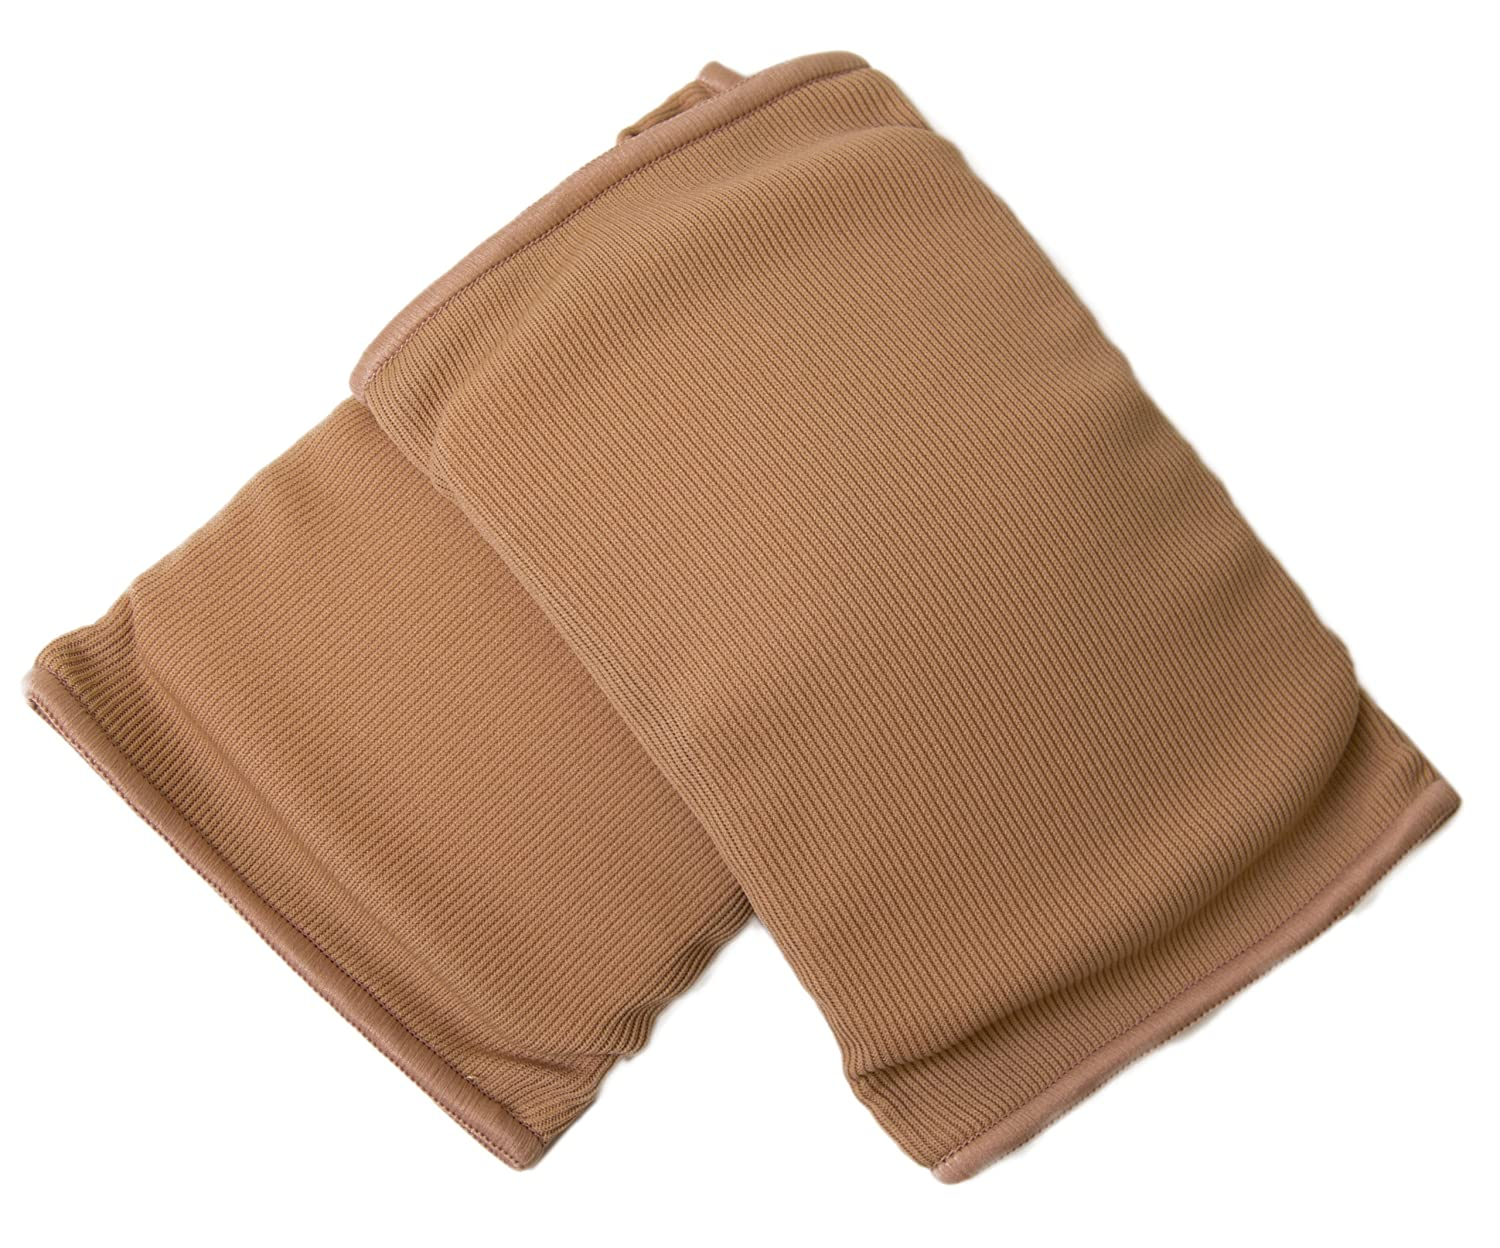 Top 7 Best Dance Knee Pads For Dancers (2020 Reviews & Buying Guide) 3